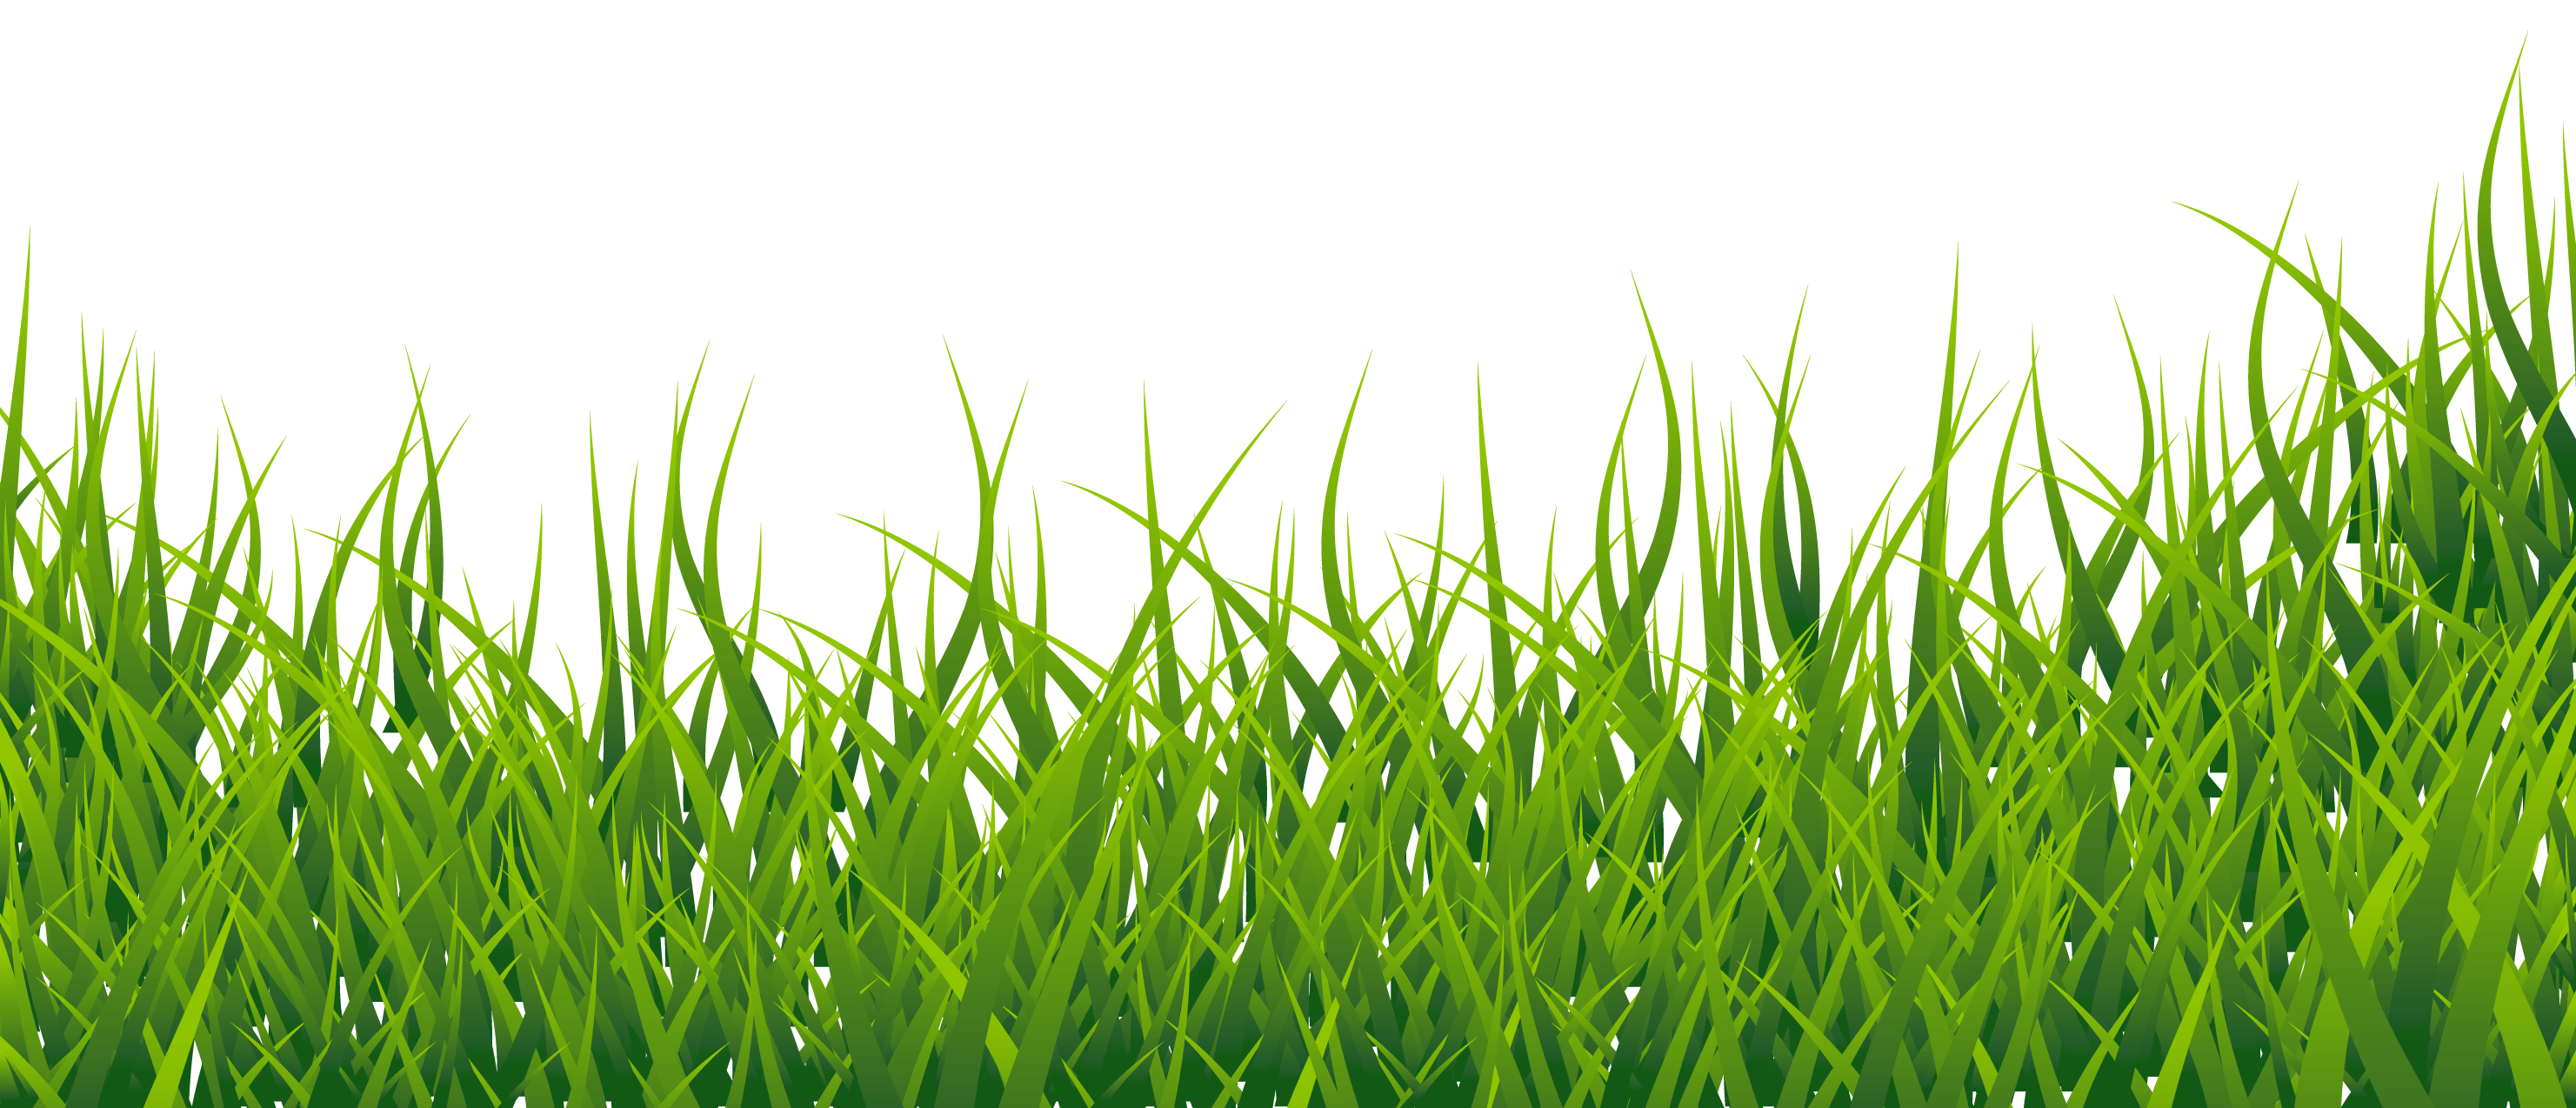 Hd grass clipart clipart library Pin by Abdulrahman Aljahdali on a | Grass vector, Grass clipart ... clipart library